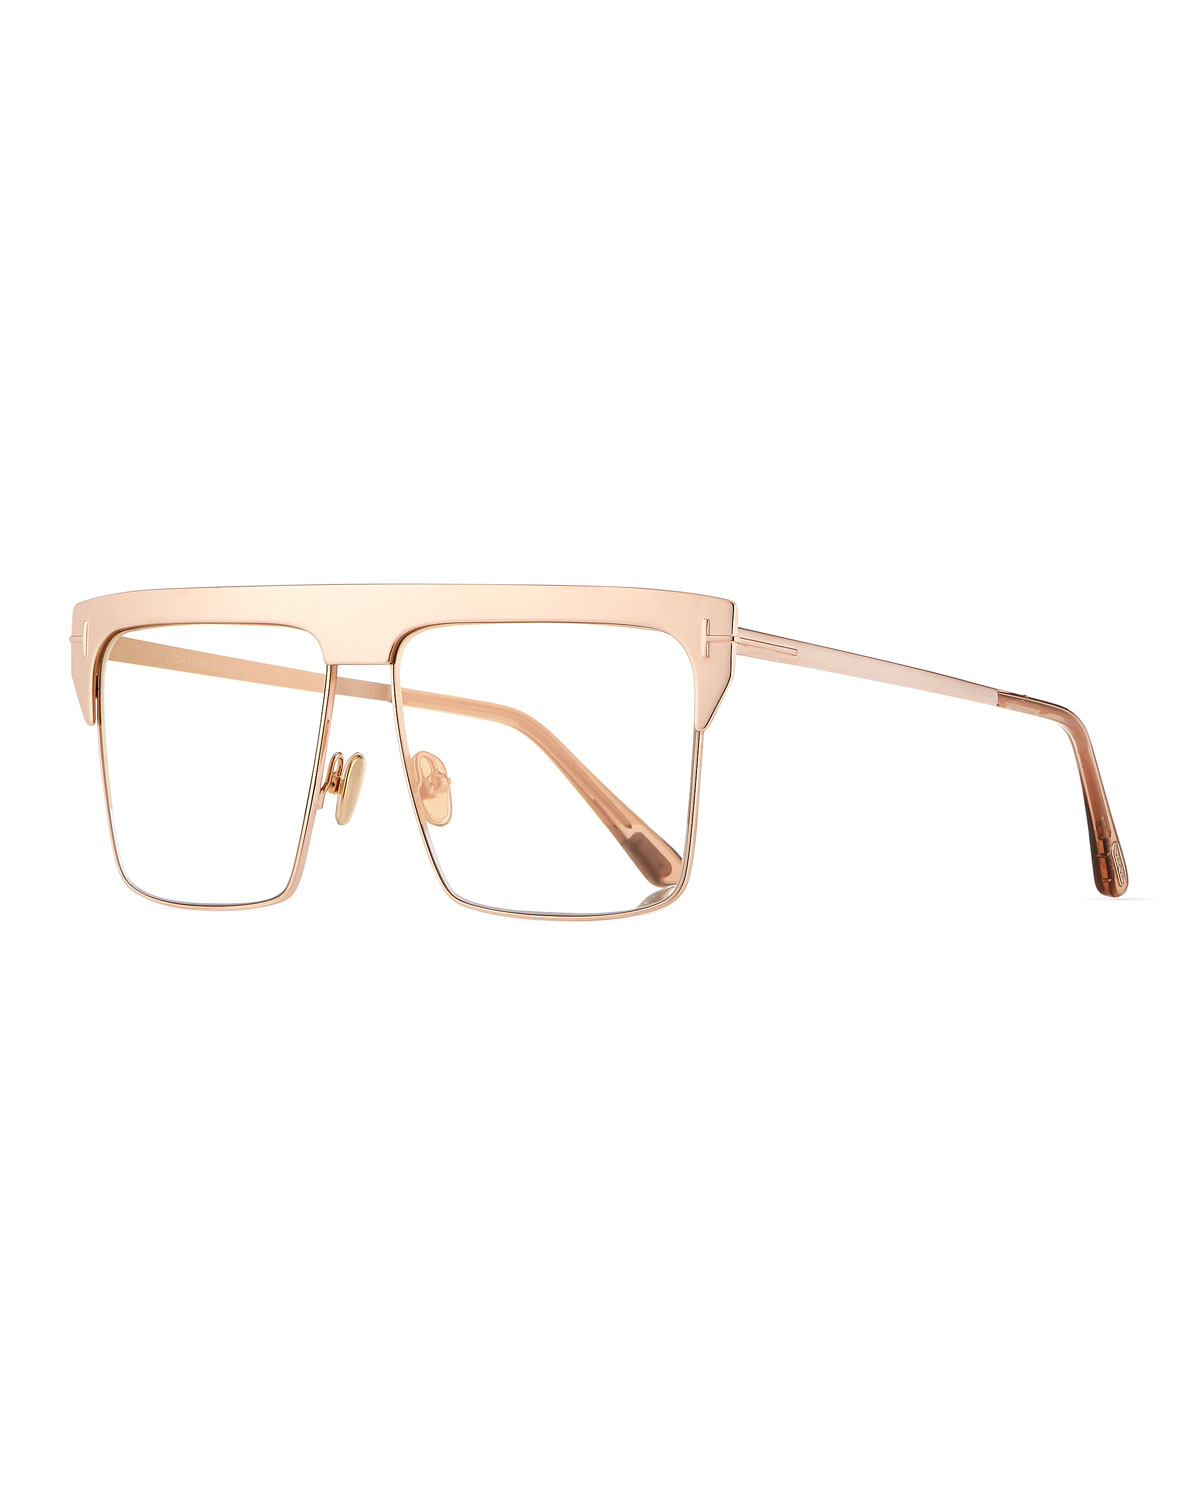 2886dc993fc3 TOM FORD Men s West Two-Tone Mirrored Square Sunglasses